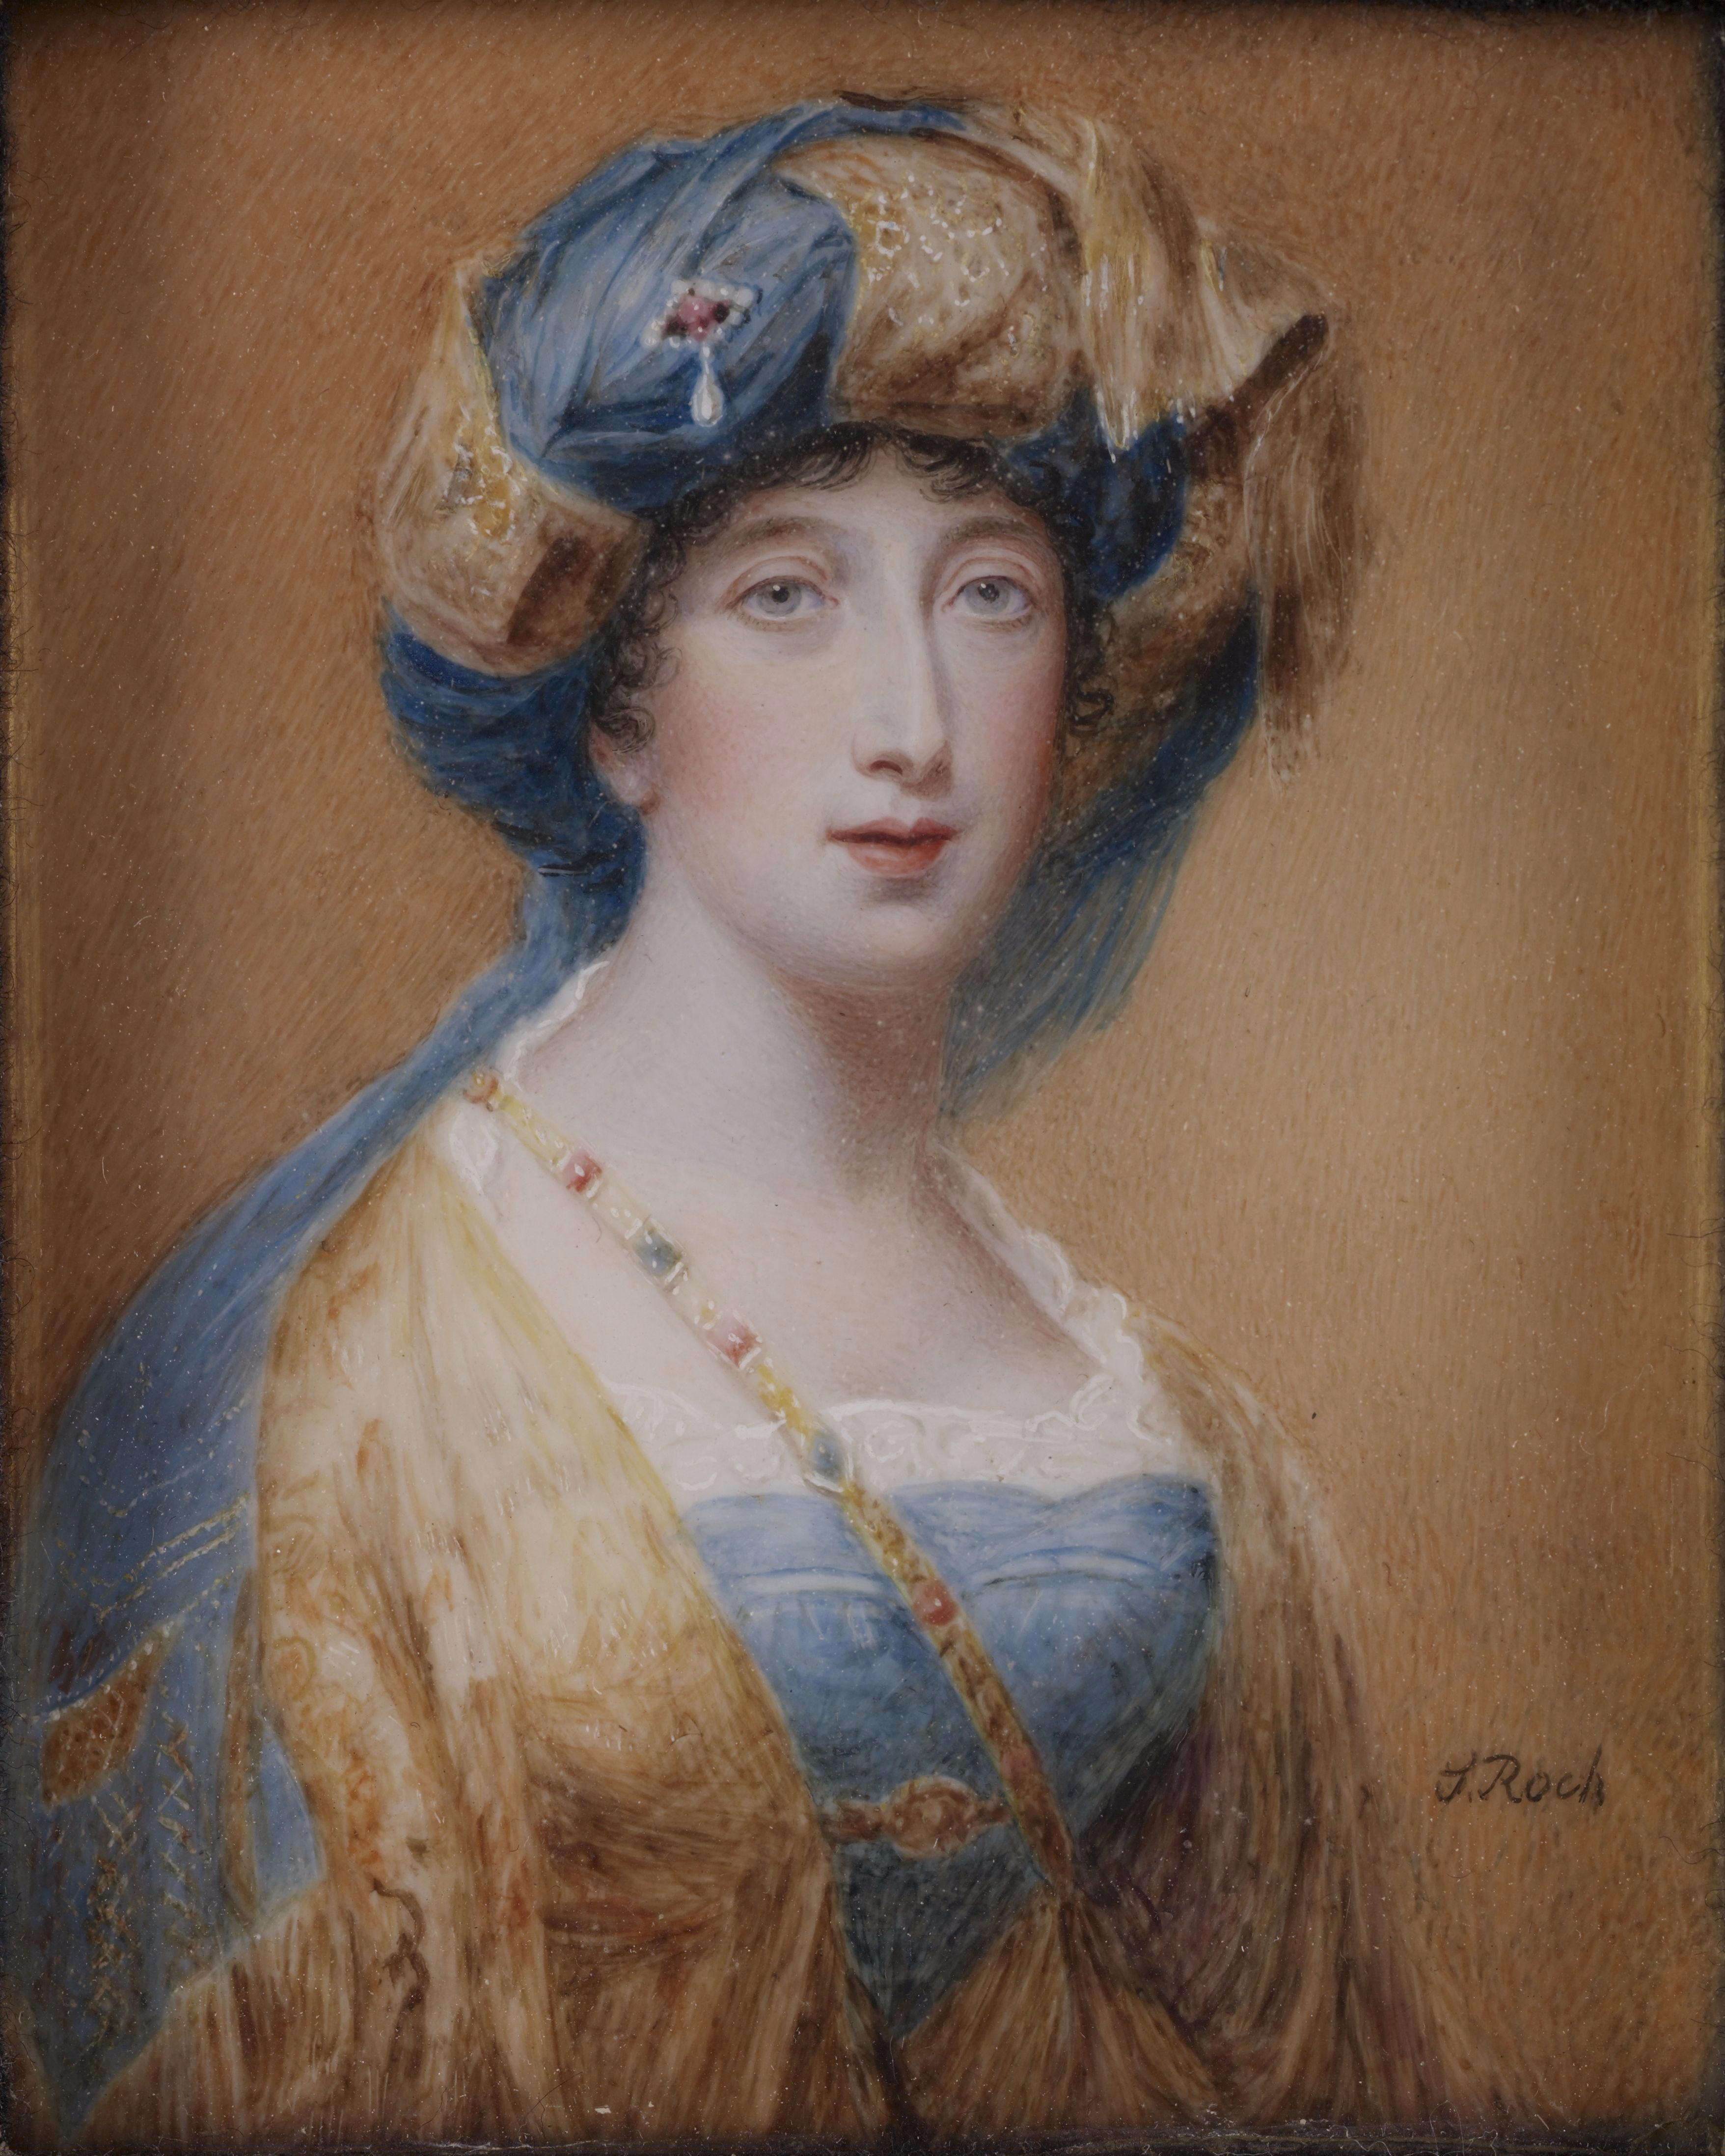 File:Priscilla, Lady Willoughby de Eresby.png